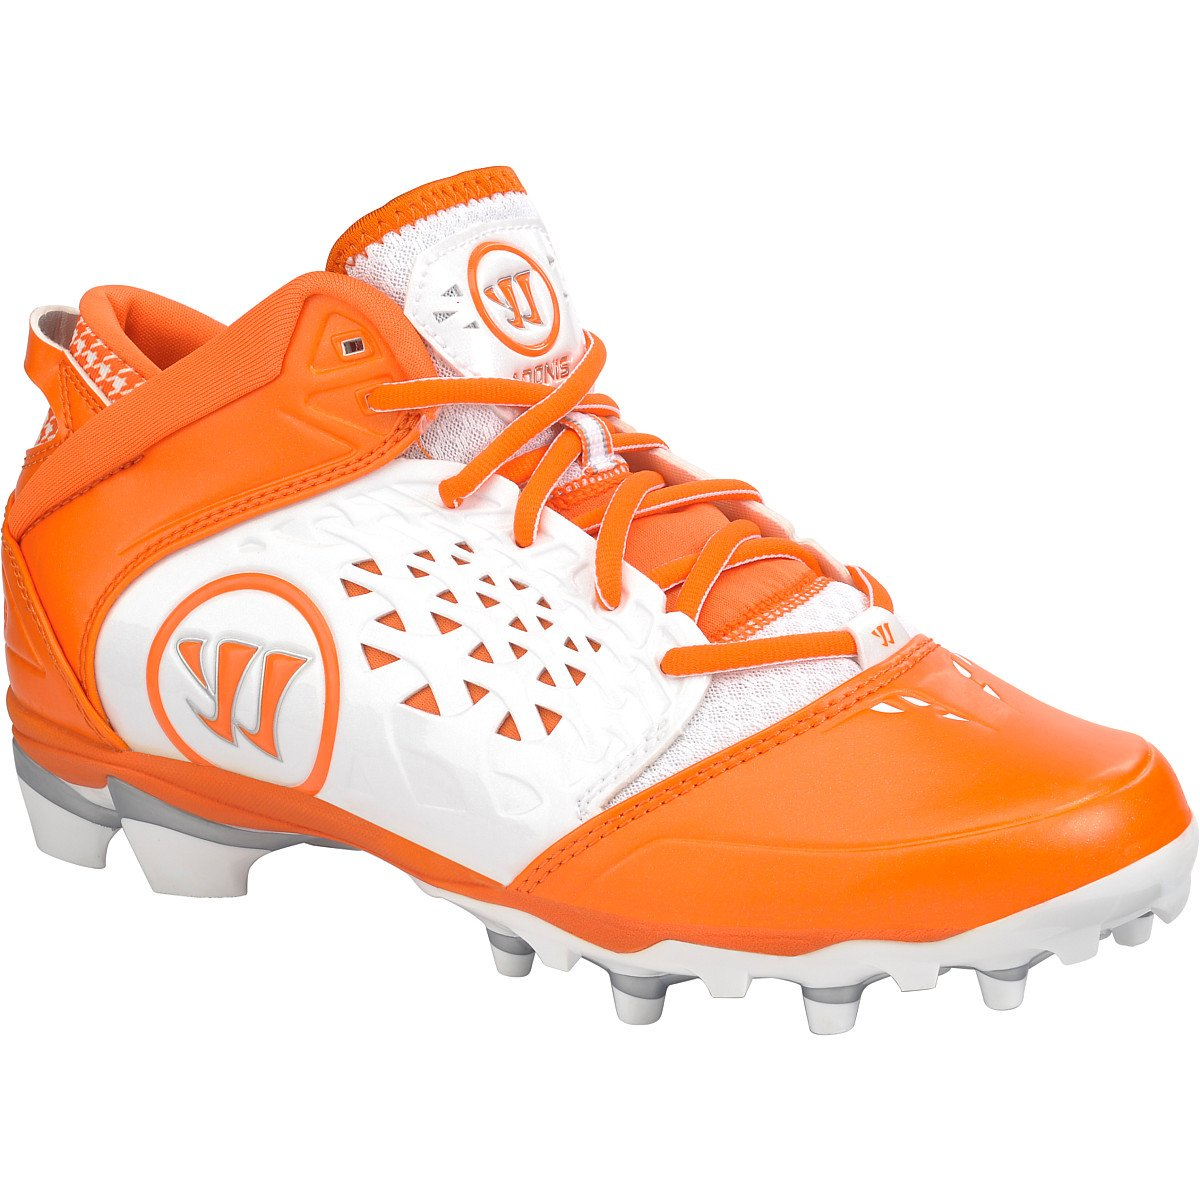 WARRIOR New Mens Adonis Lacrosse Cleats White/Orange Sz 10 M by WARRIOR